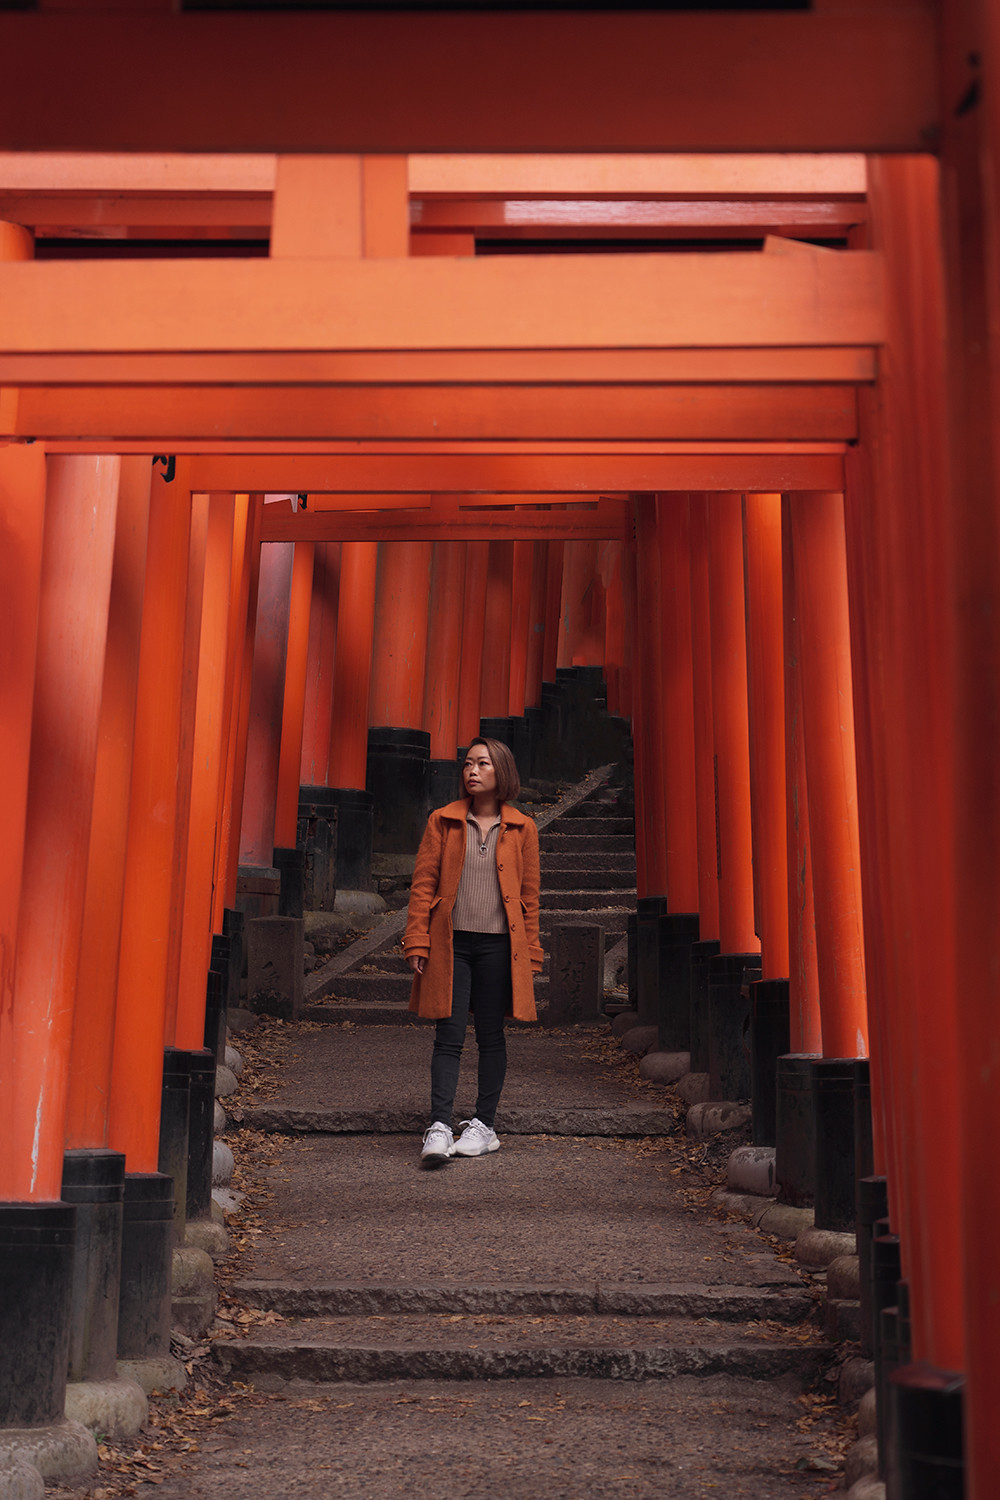 33kyoto-fushimi-inari-torii-shrine-architecture-japan-travel